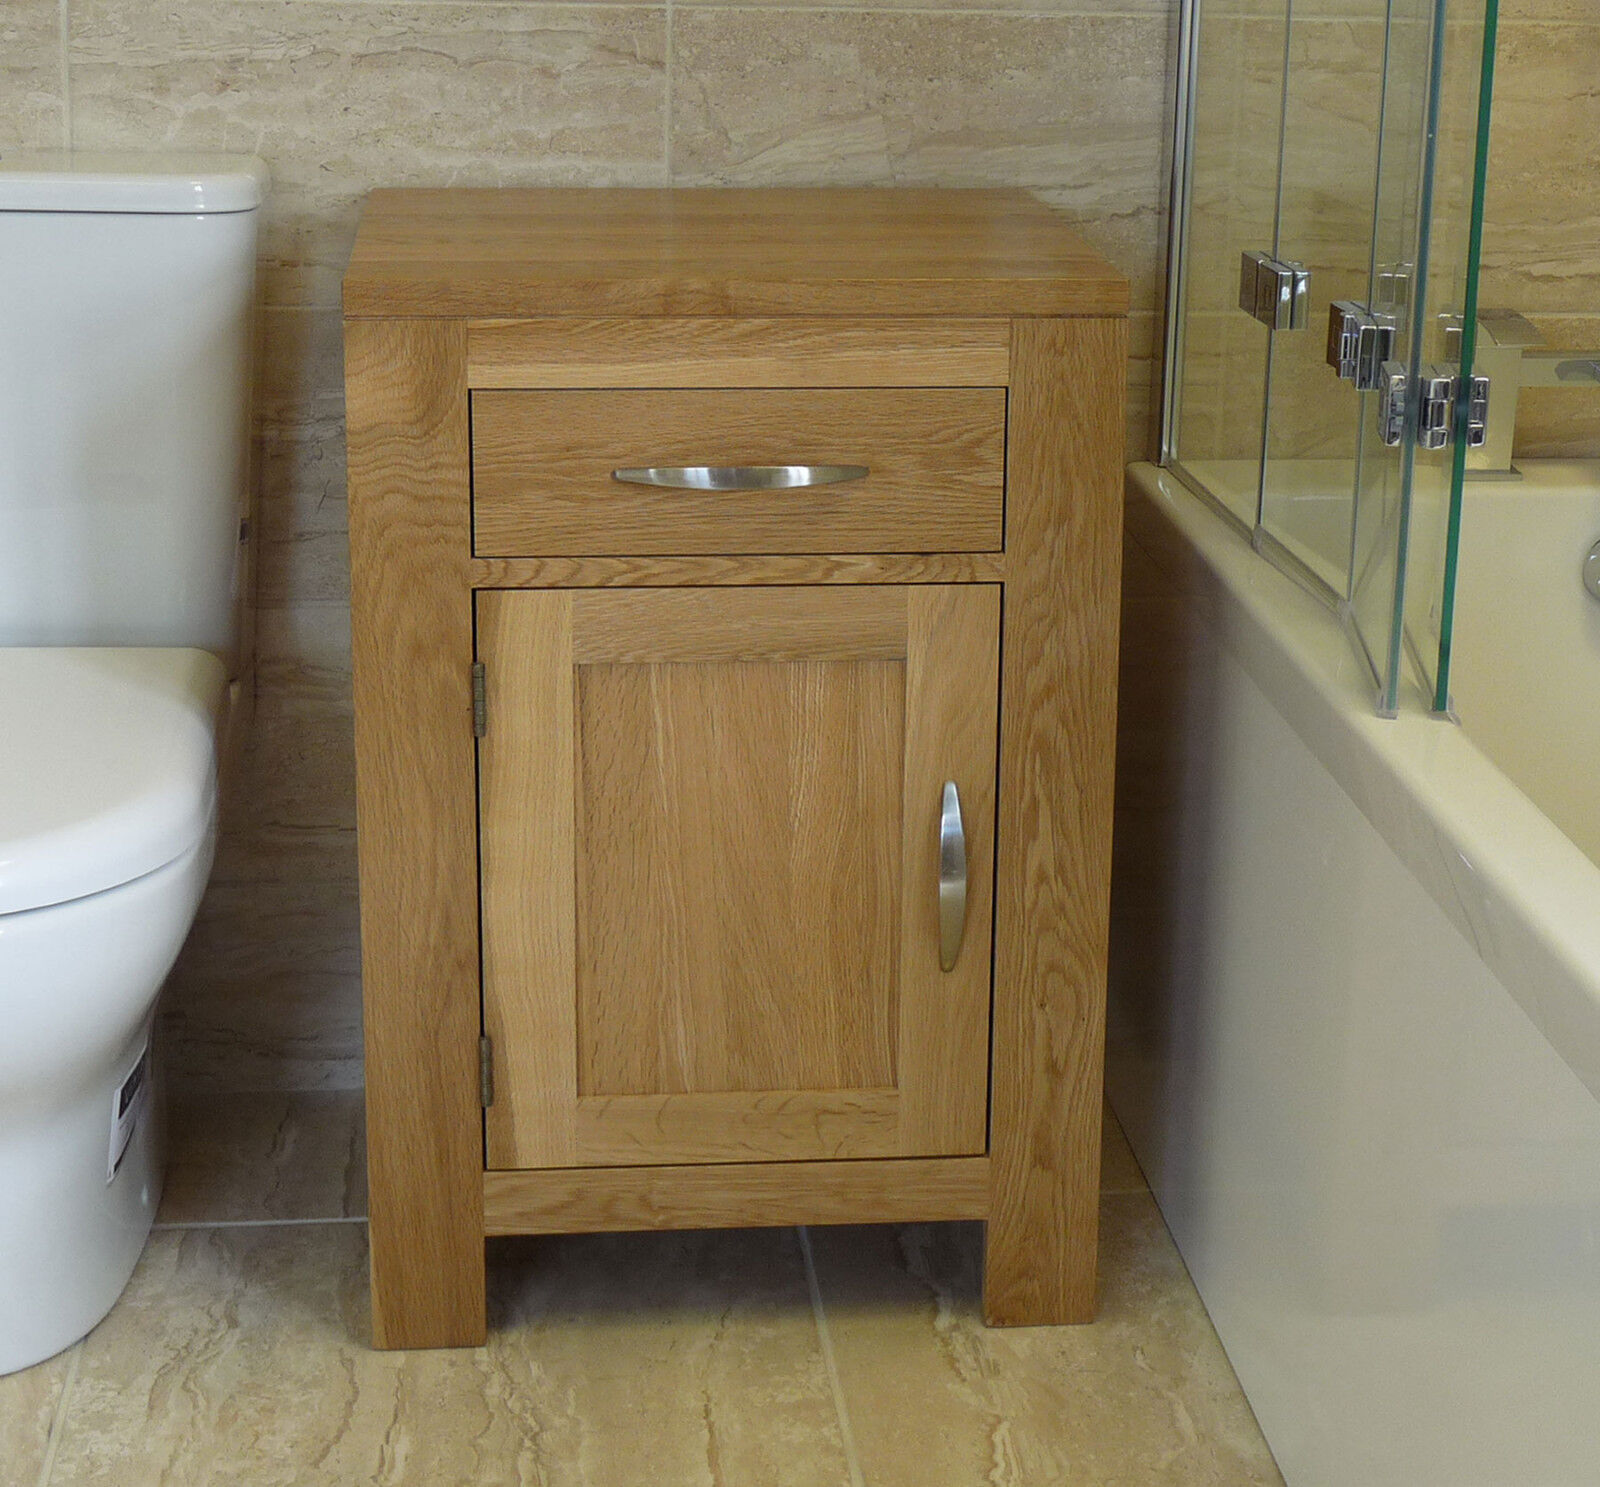 solid oak bathroom furniture basin cabinet 60cm wide x